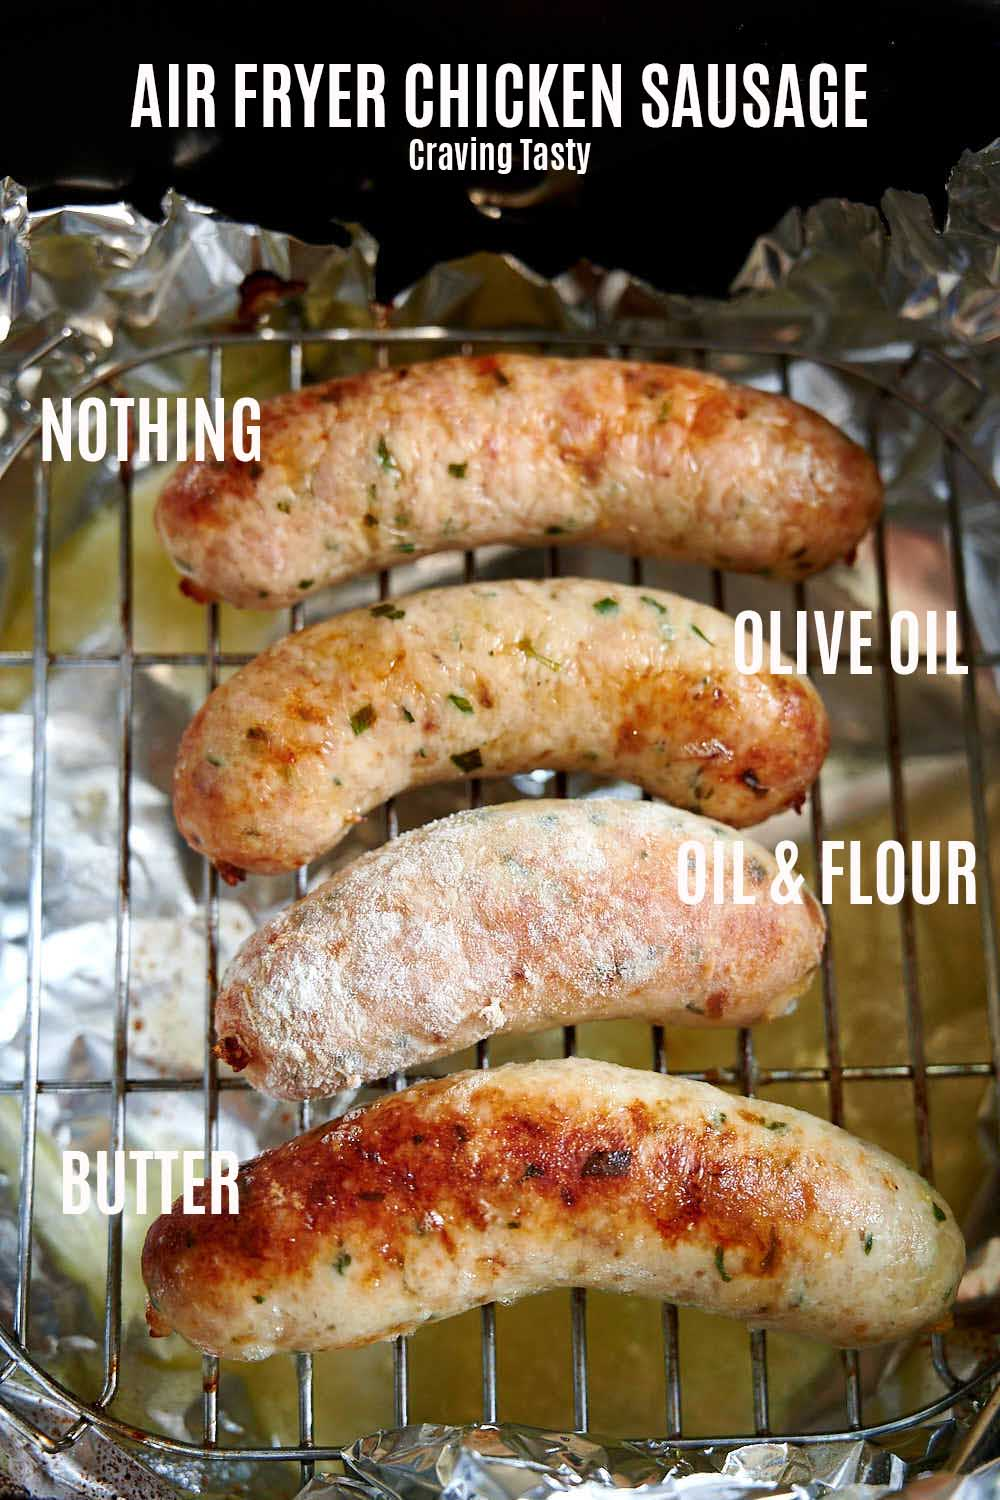 Comparing different chicken sausage air frying methods